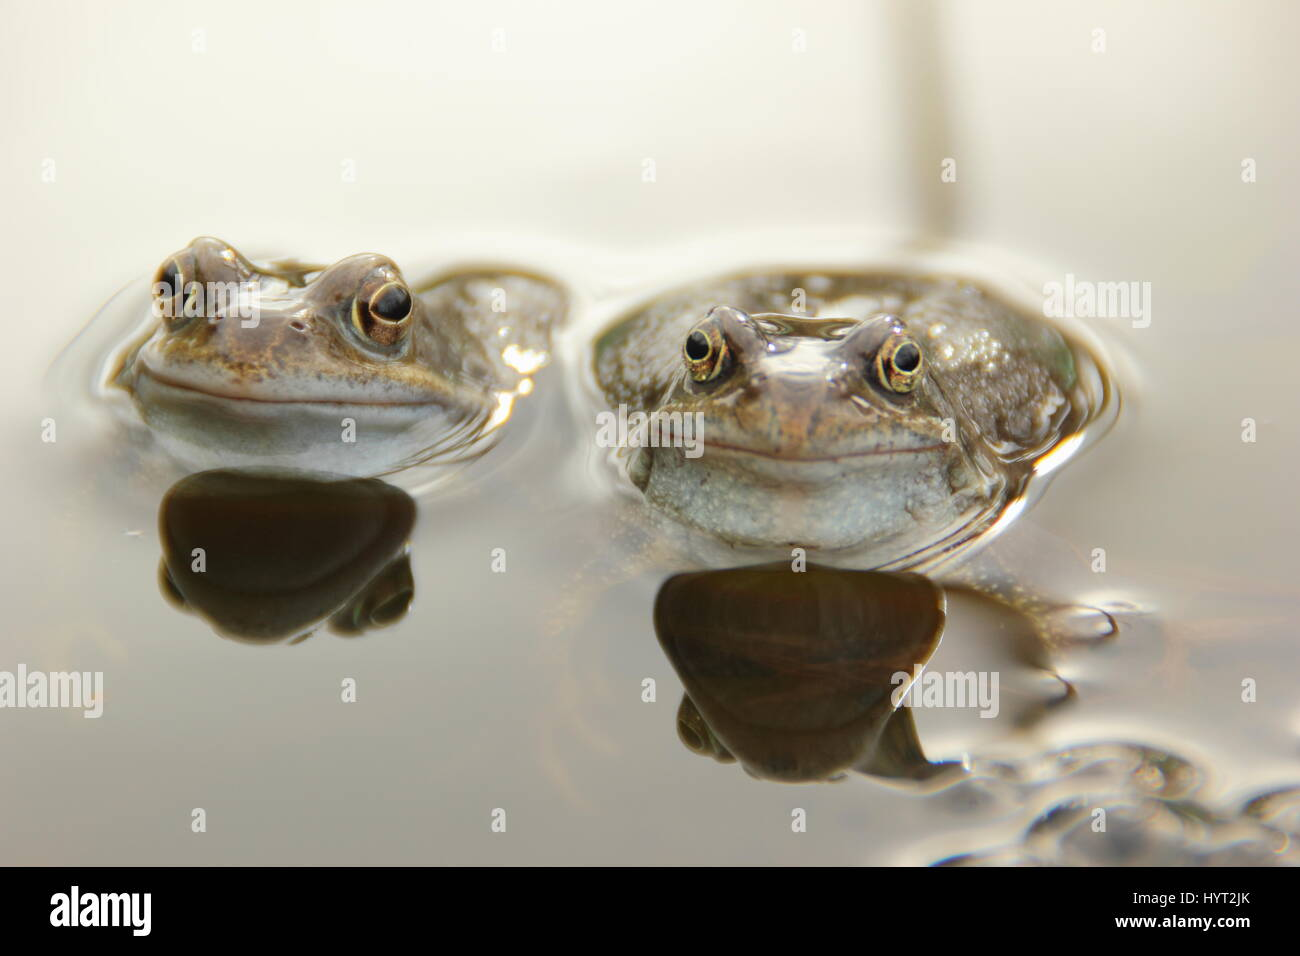 European common frogs (rana temporaria) chorusing in an urban garden pond during breeding (spawning) season,, England - Stock Image